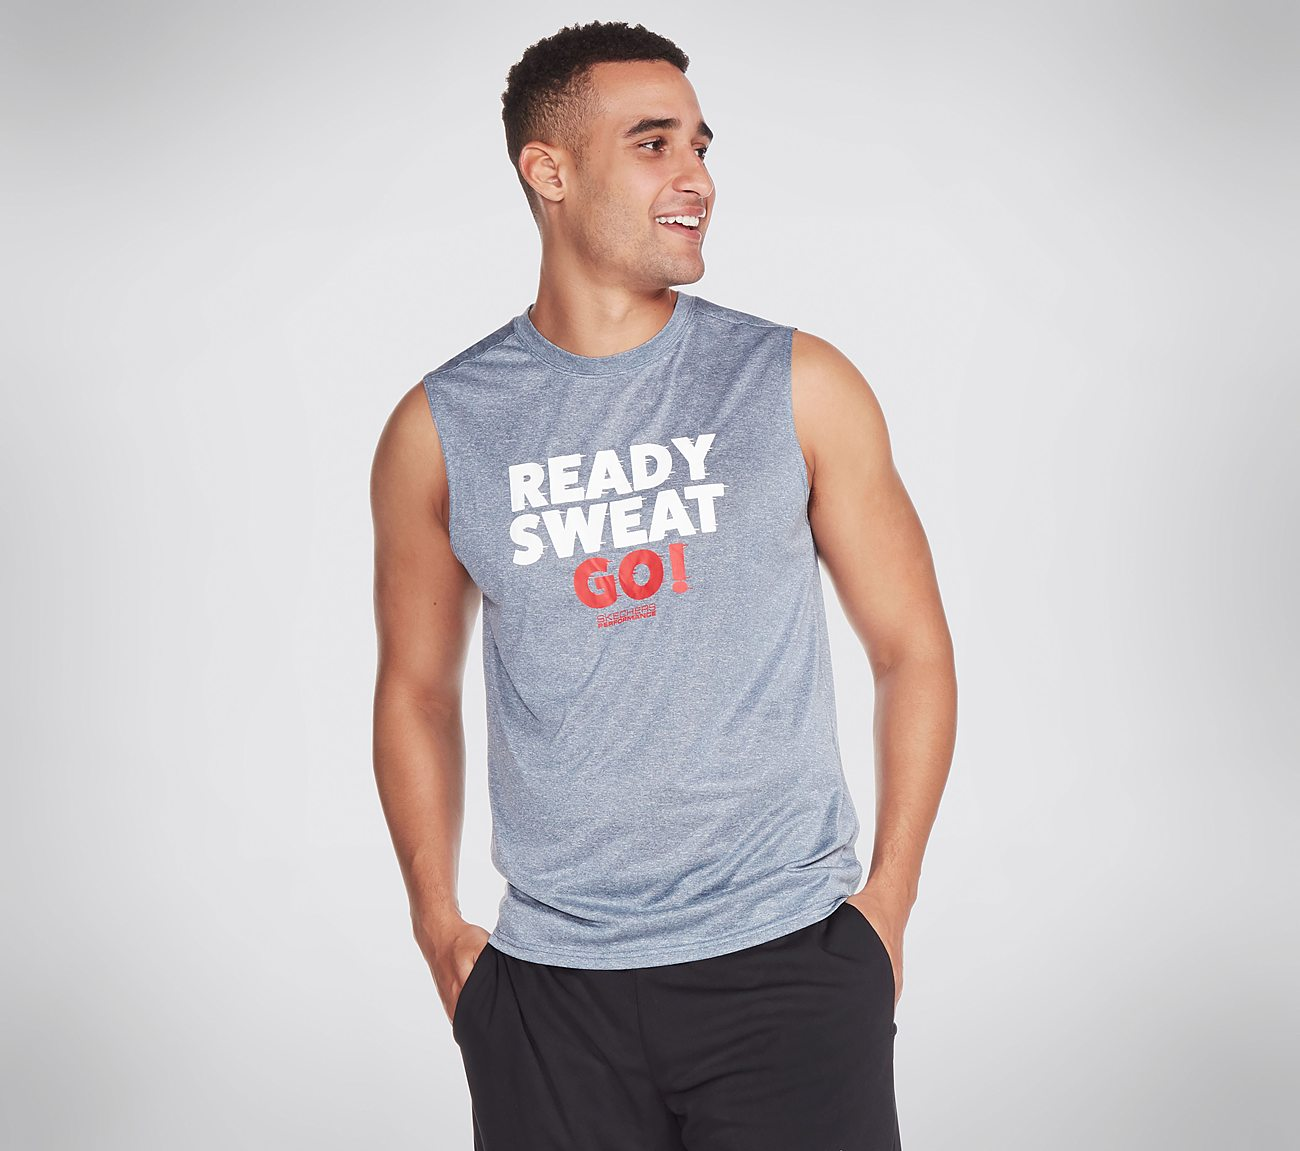 Skechers Apparel Ready Sweat Go Tank Top